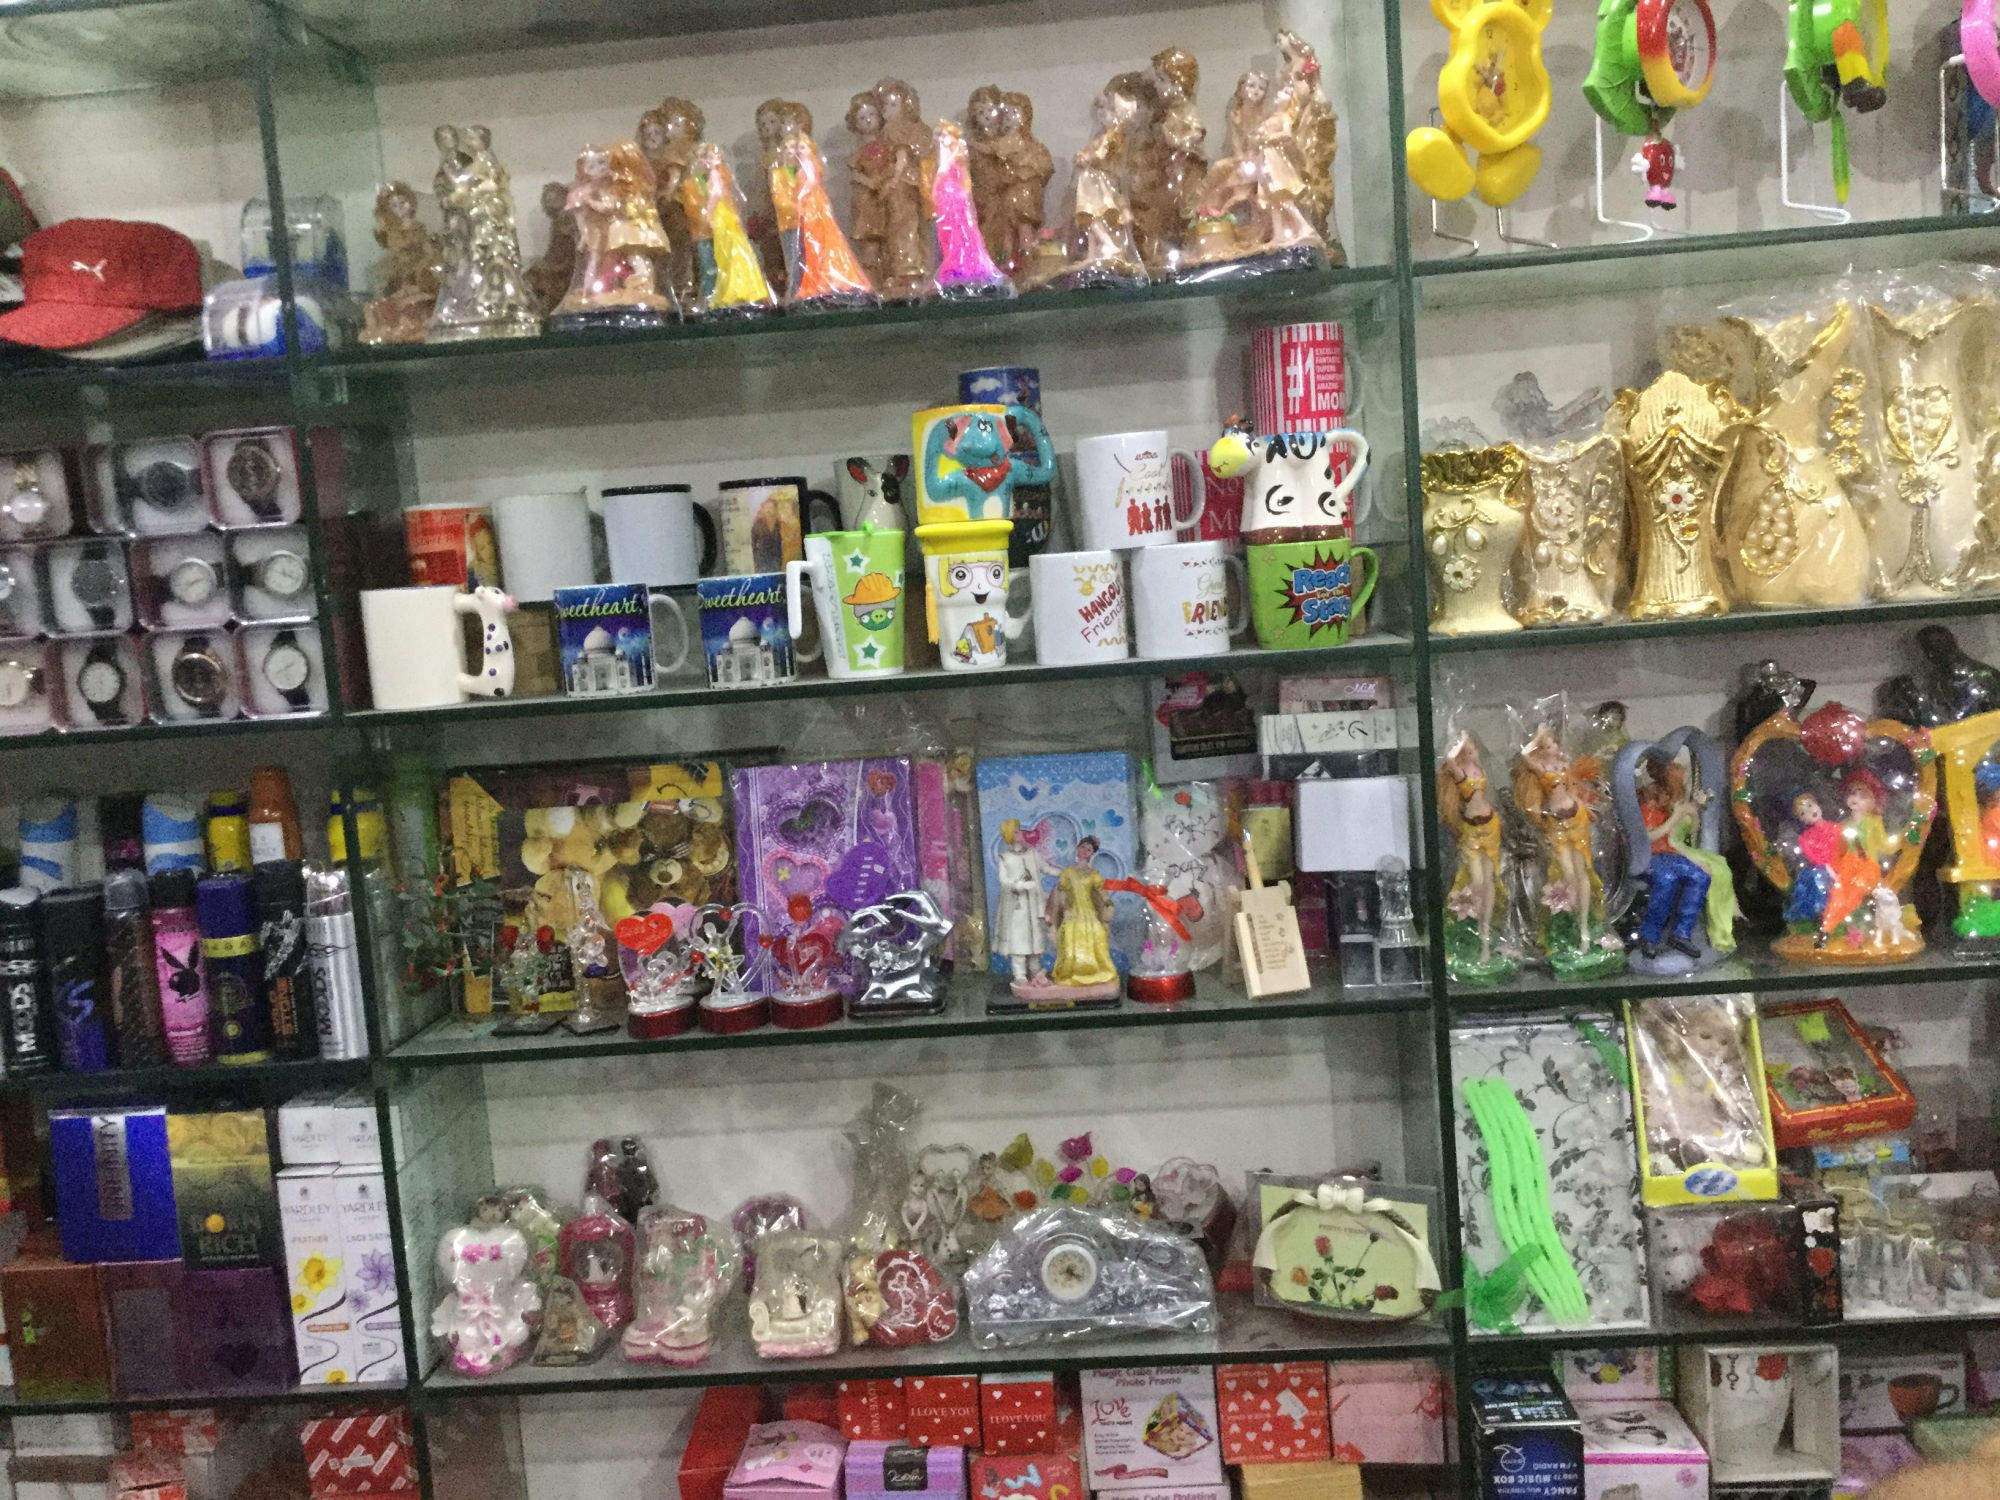 a4d5f1944d3 Top 50 Gift Article Wholesalers in Kanpur - Best Gift Item ...